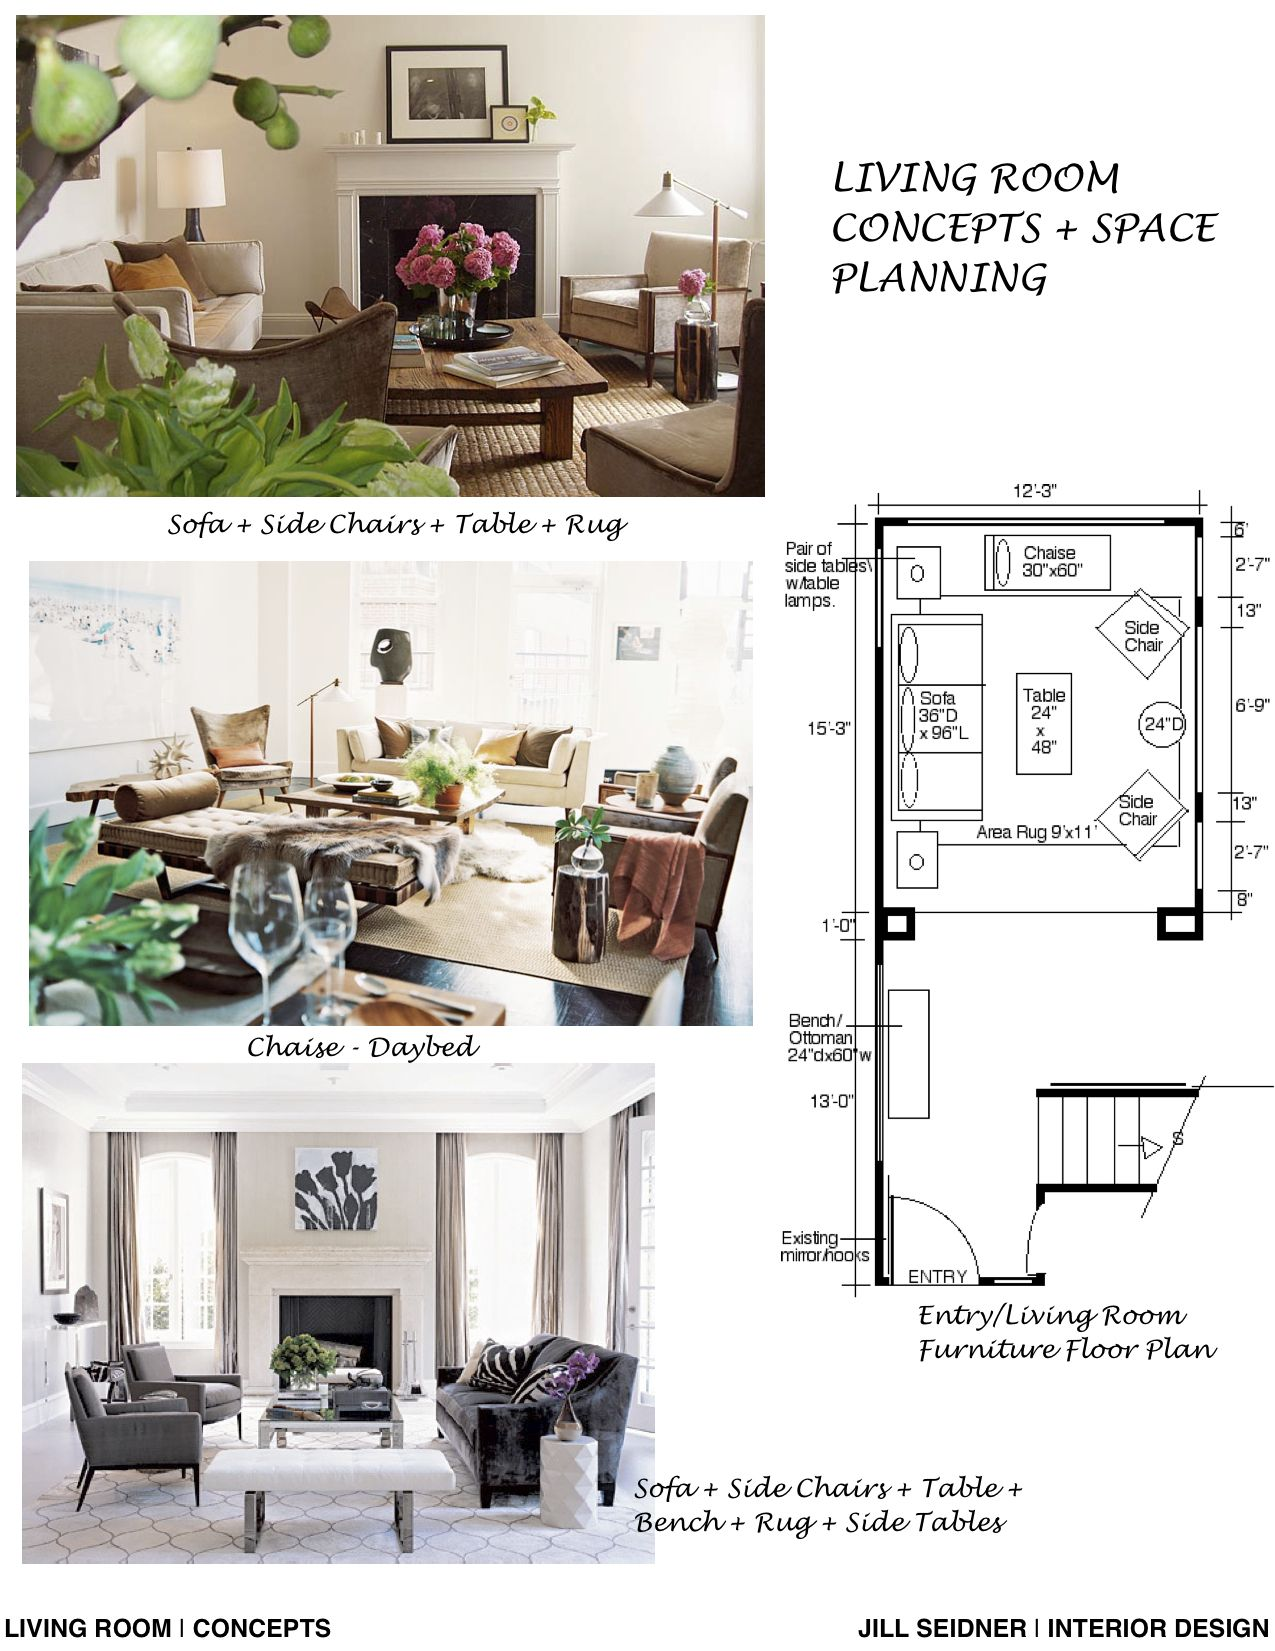 Interior Design Furniture Placement ~ Concept board and furniture layout for a living room